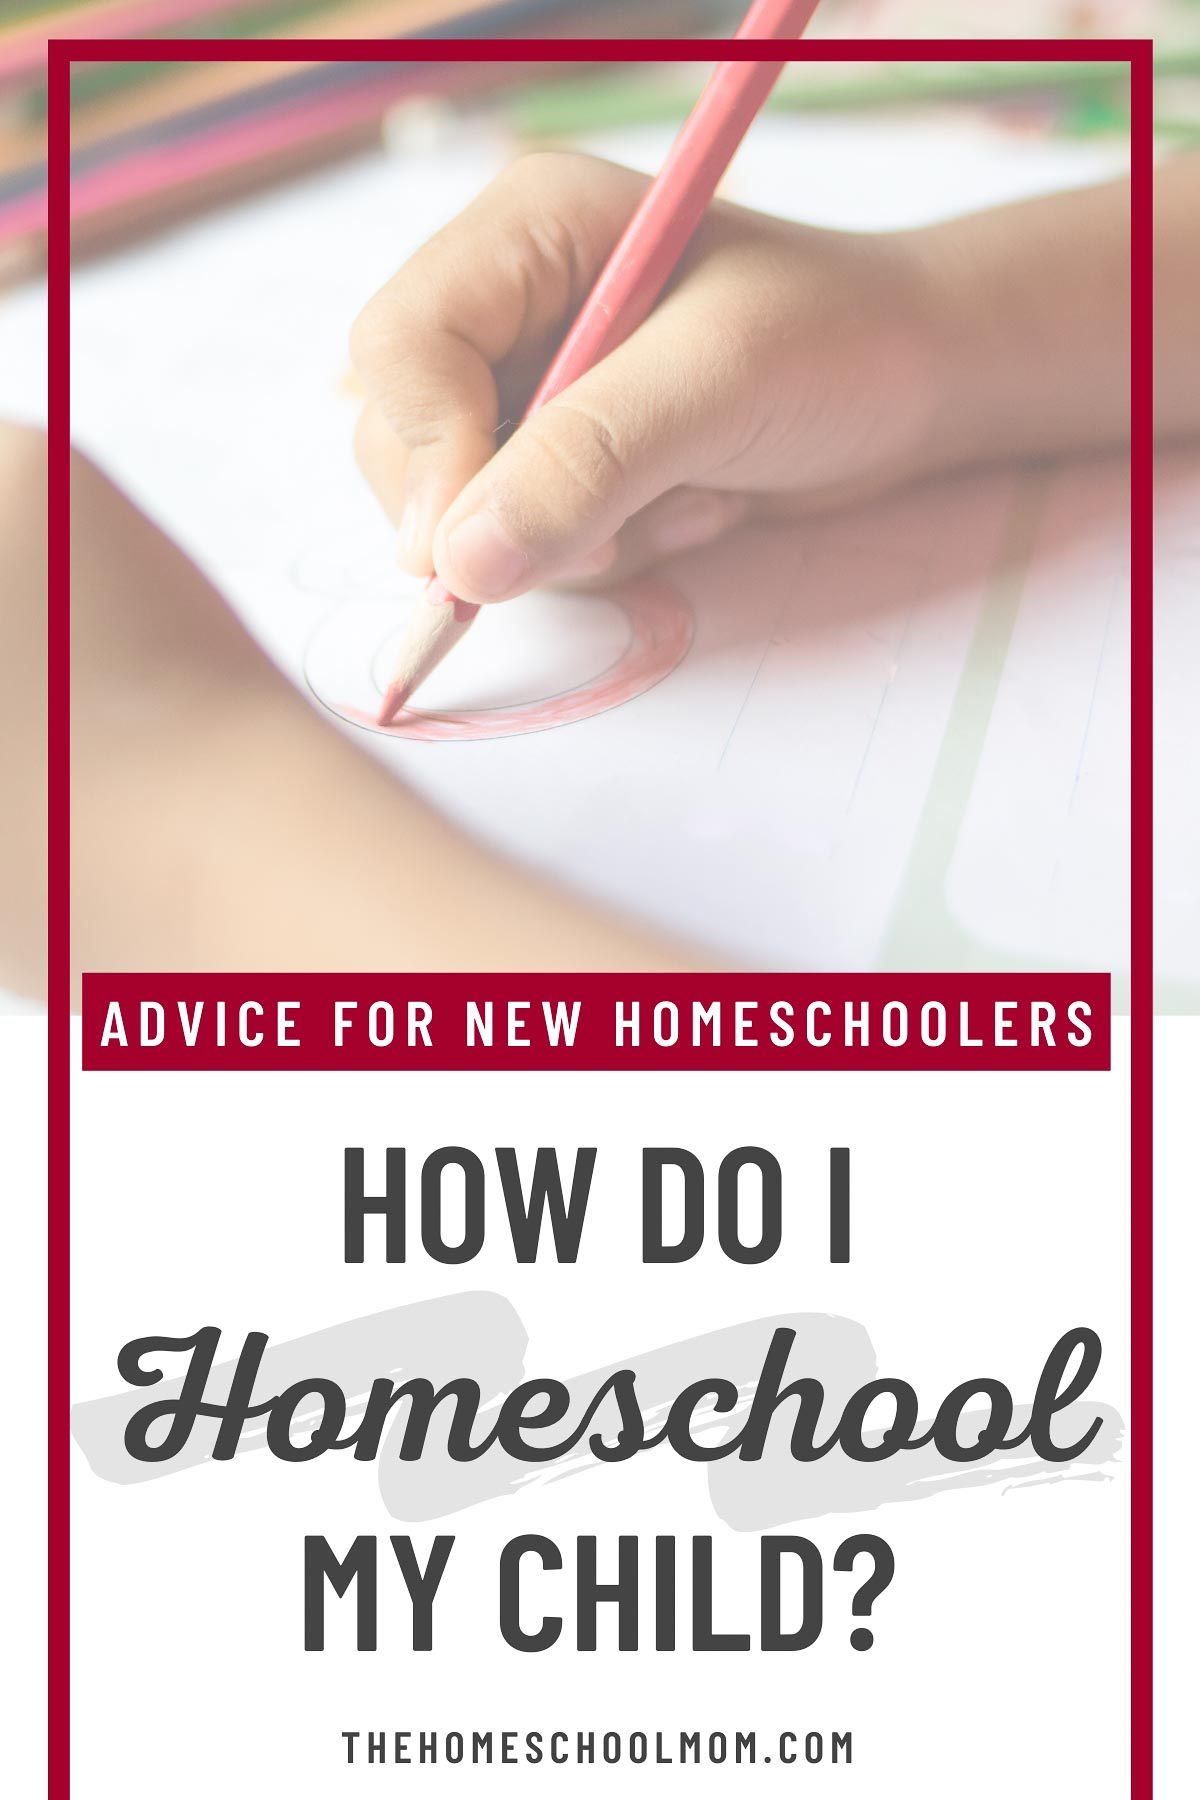 Child drawing with text How Do I Homeschool My Child? Advice for New Homeschoolers